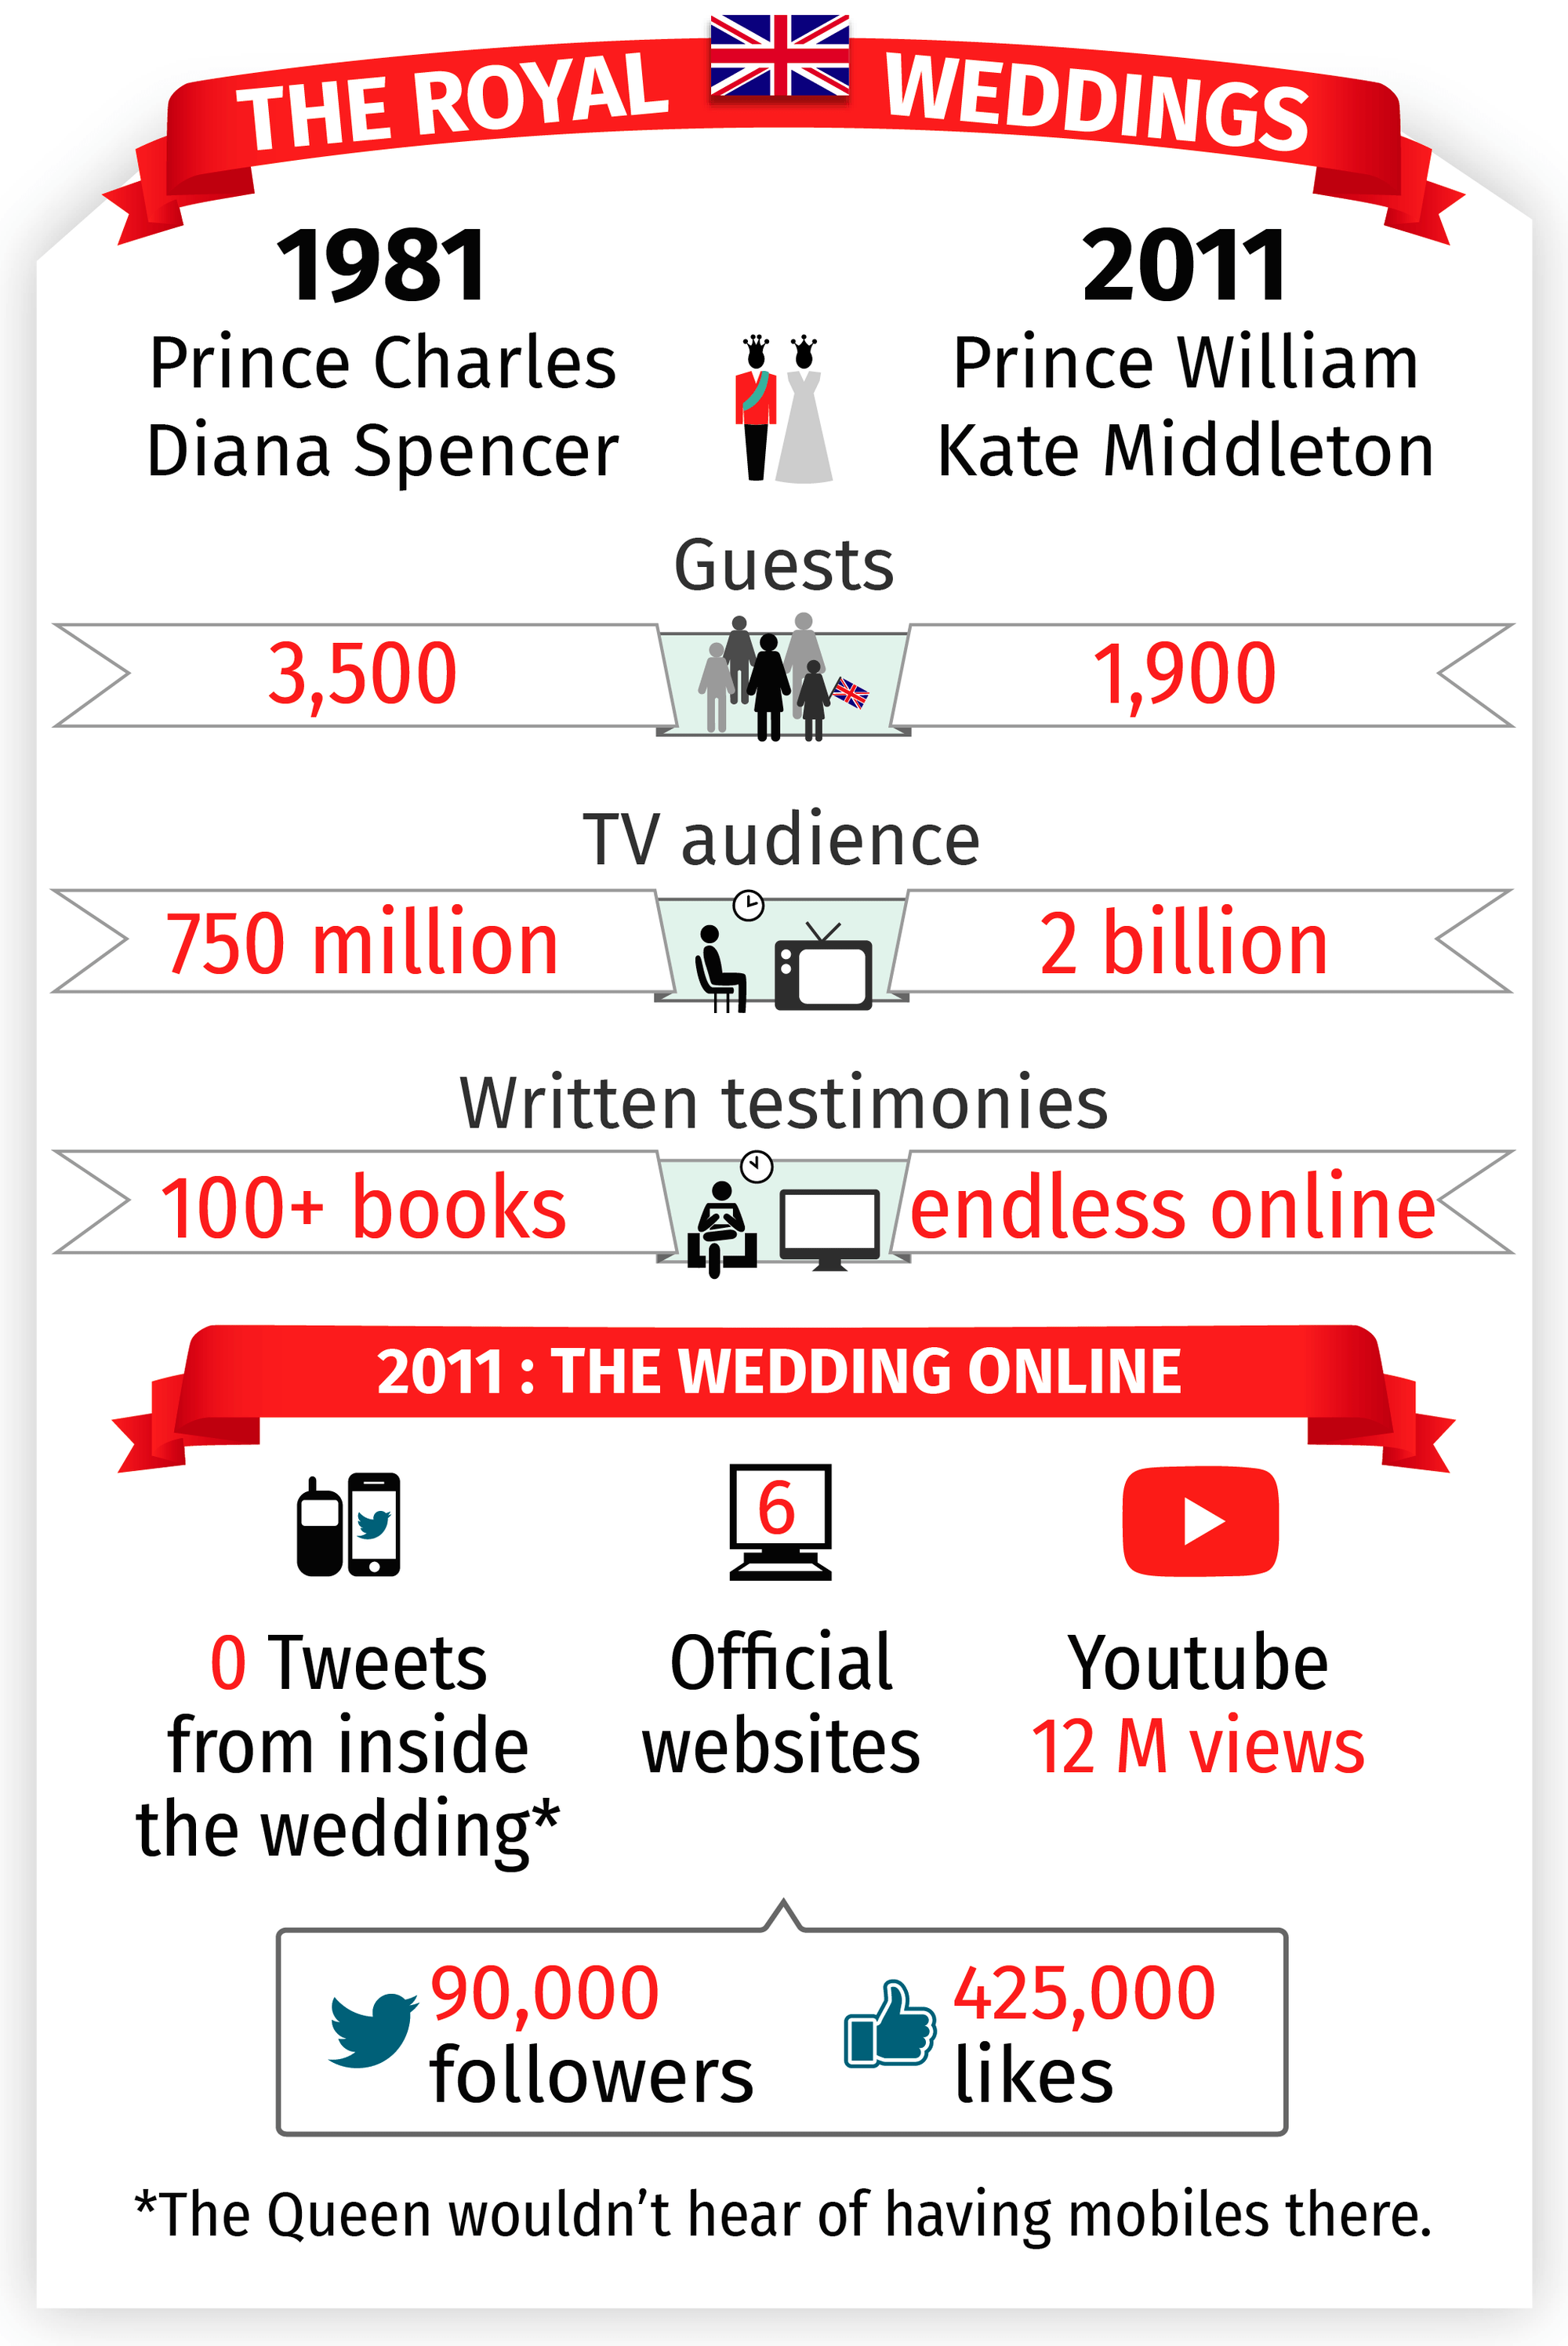 Media coverage of Royal Weddings, iCrossing, 2011.